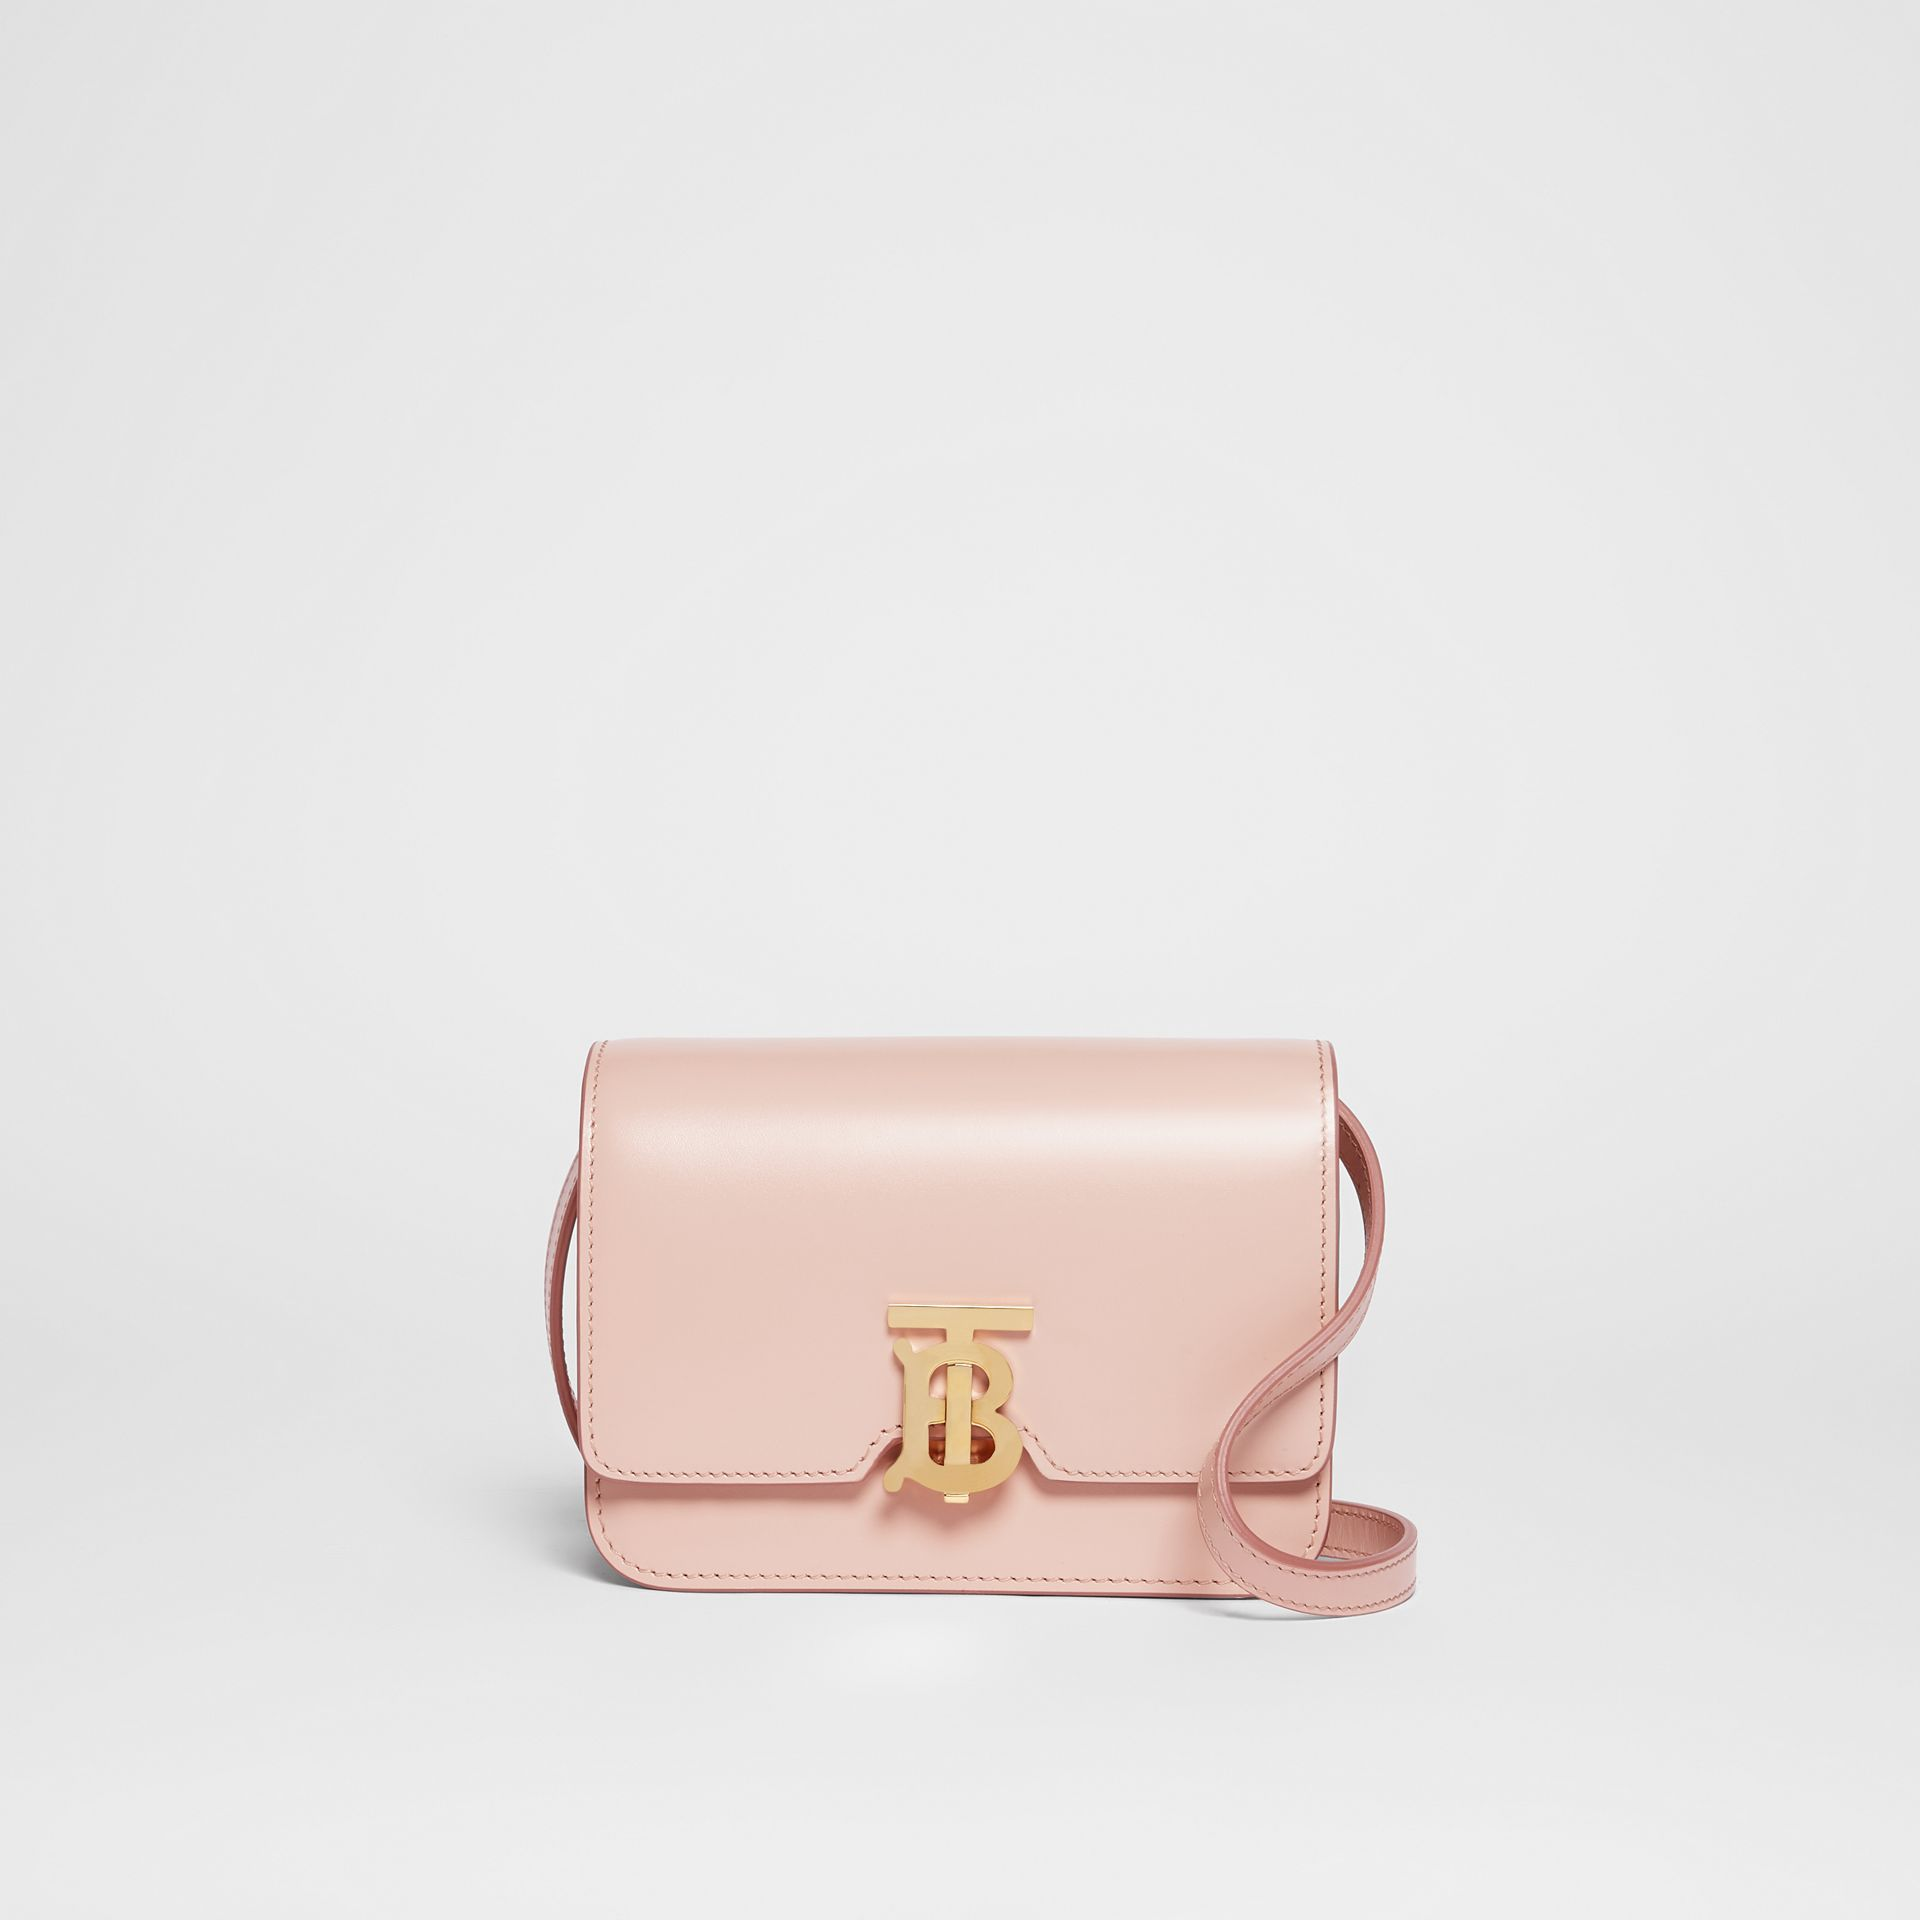 Mini Leather TB Bag in Rose Beige - Women | Burberry Canada - gallery image 0